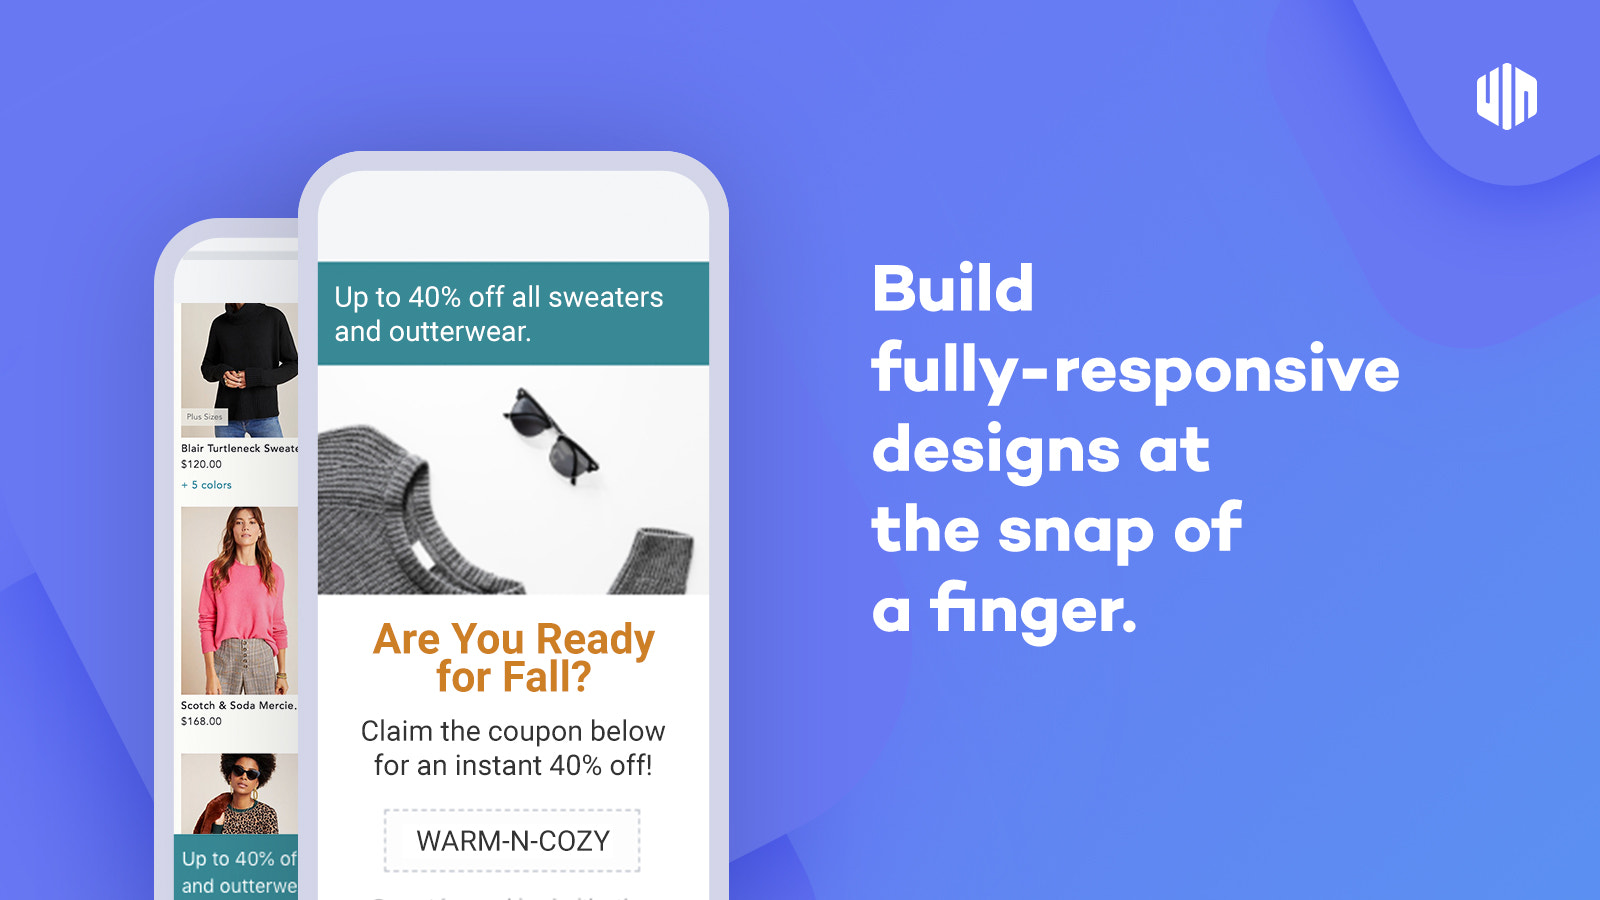 Build fully responsive designs at the snap of a finger